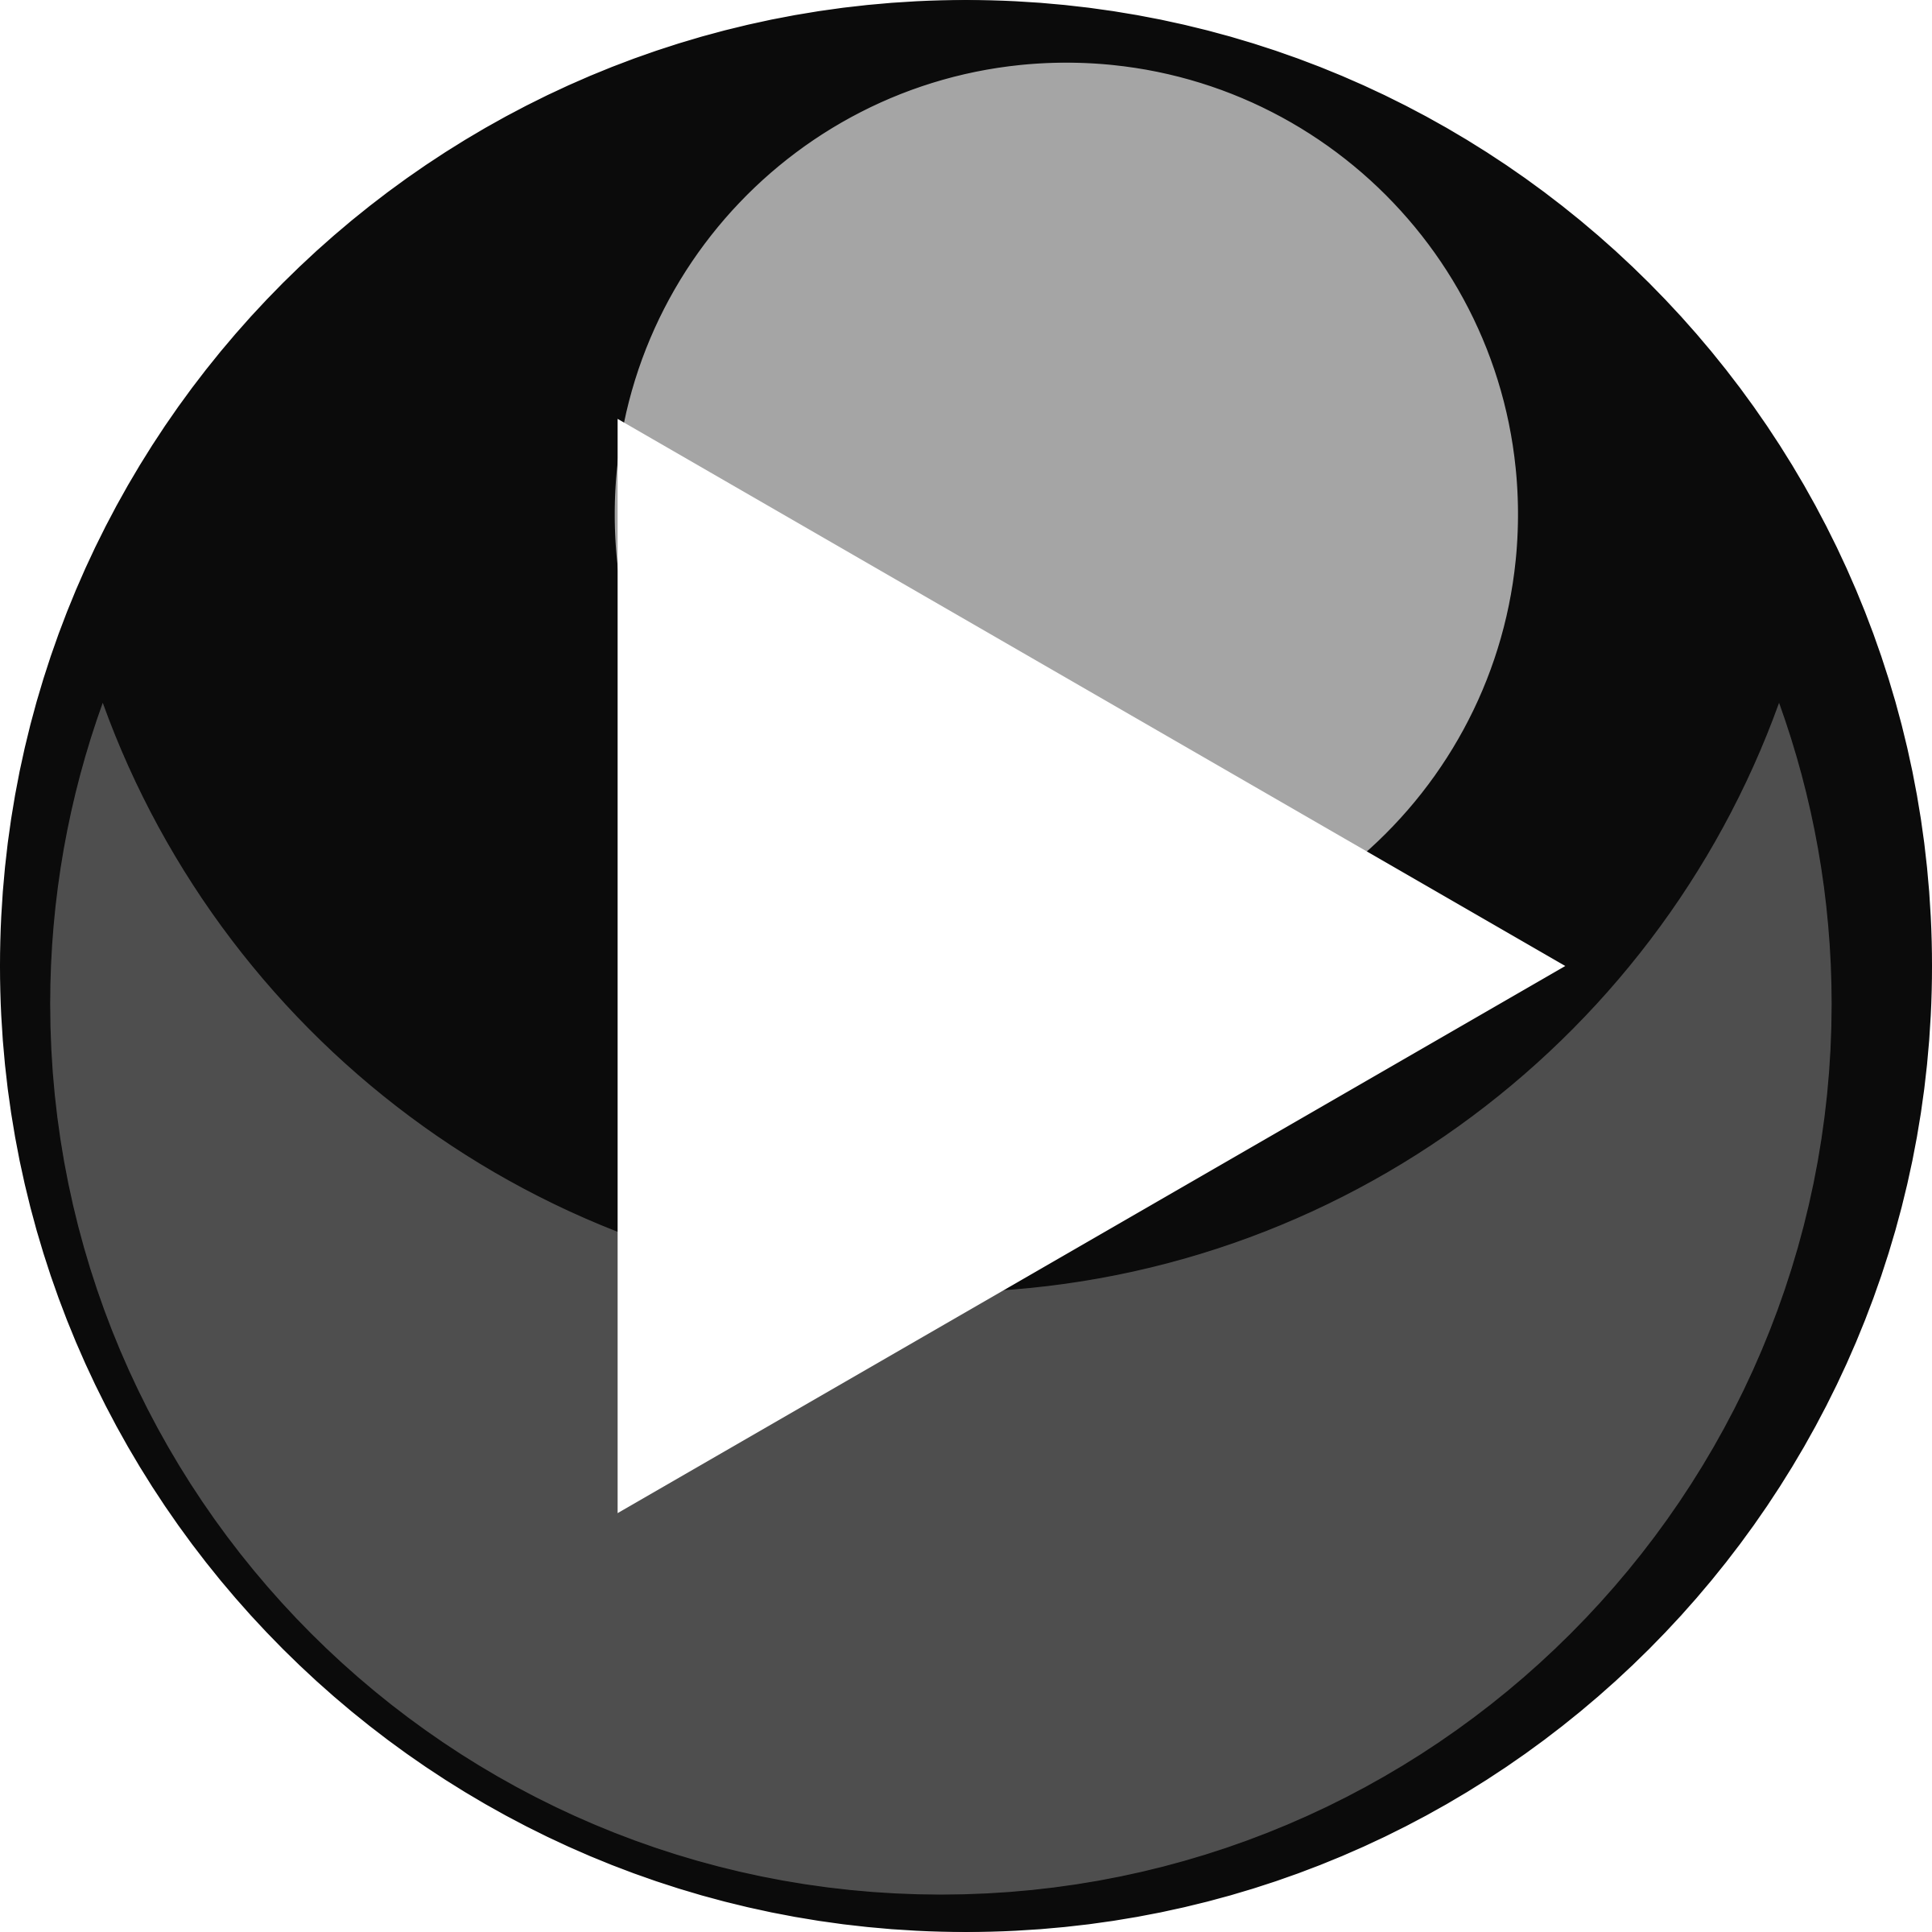 Play button (transparent) by rugkme